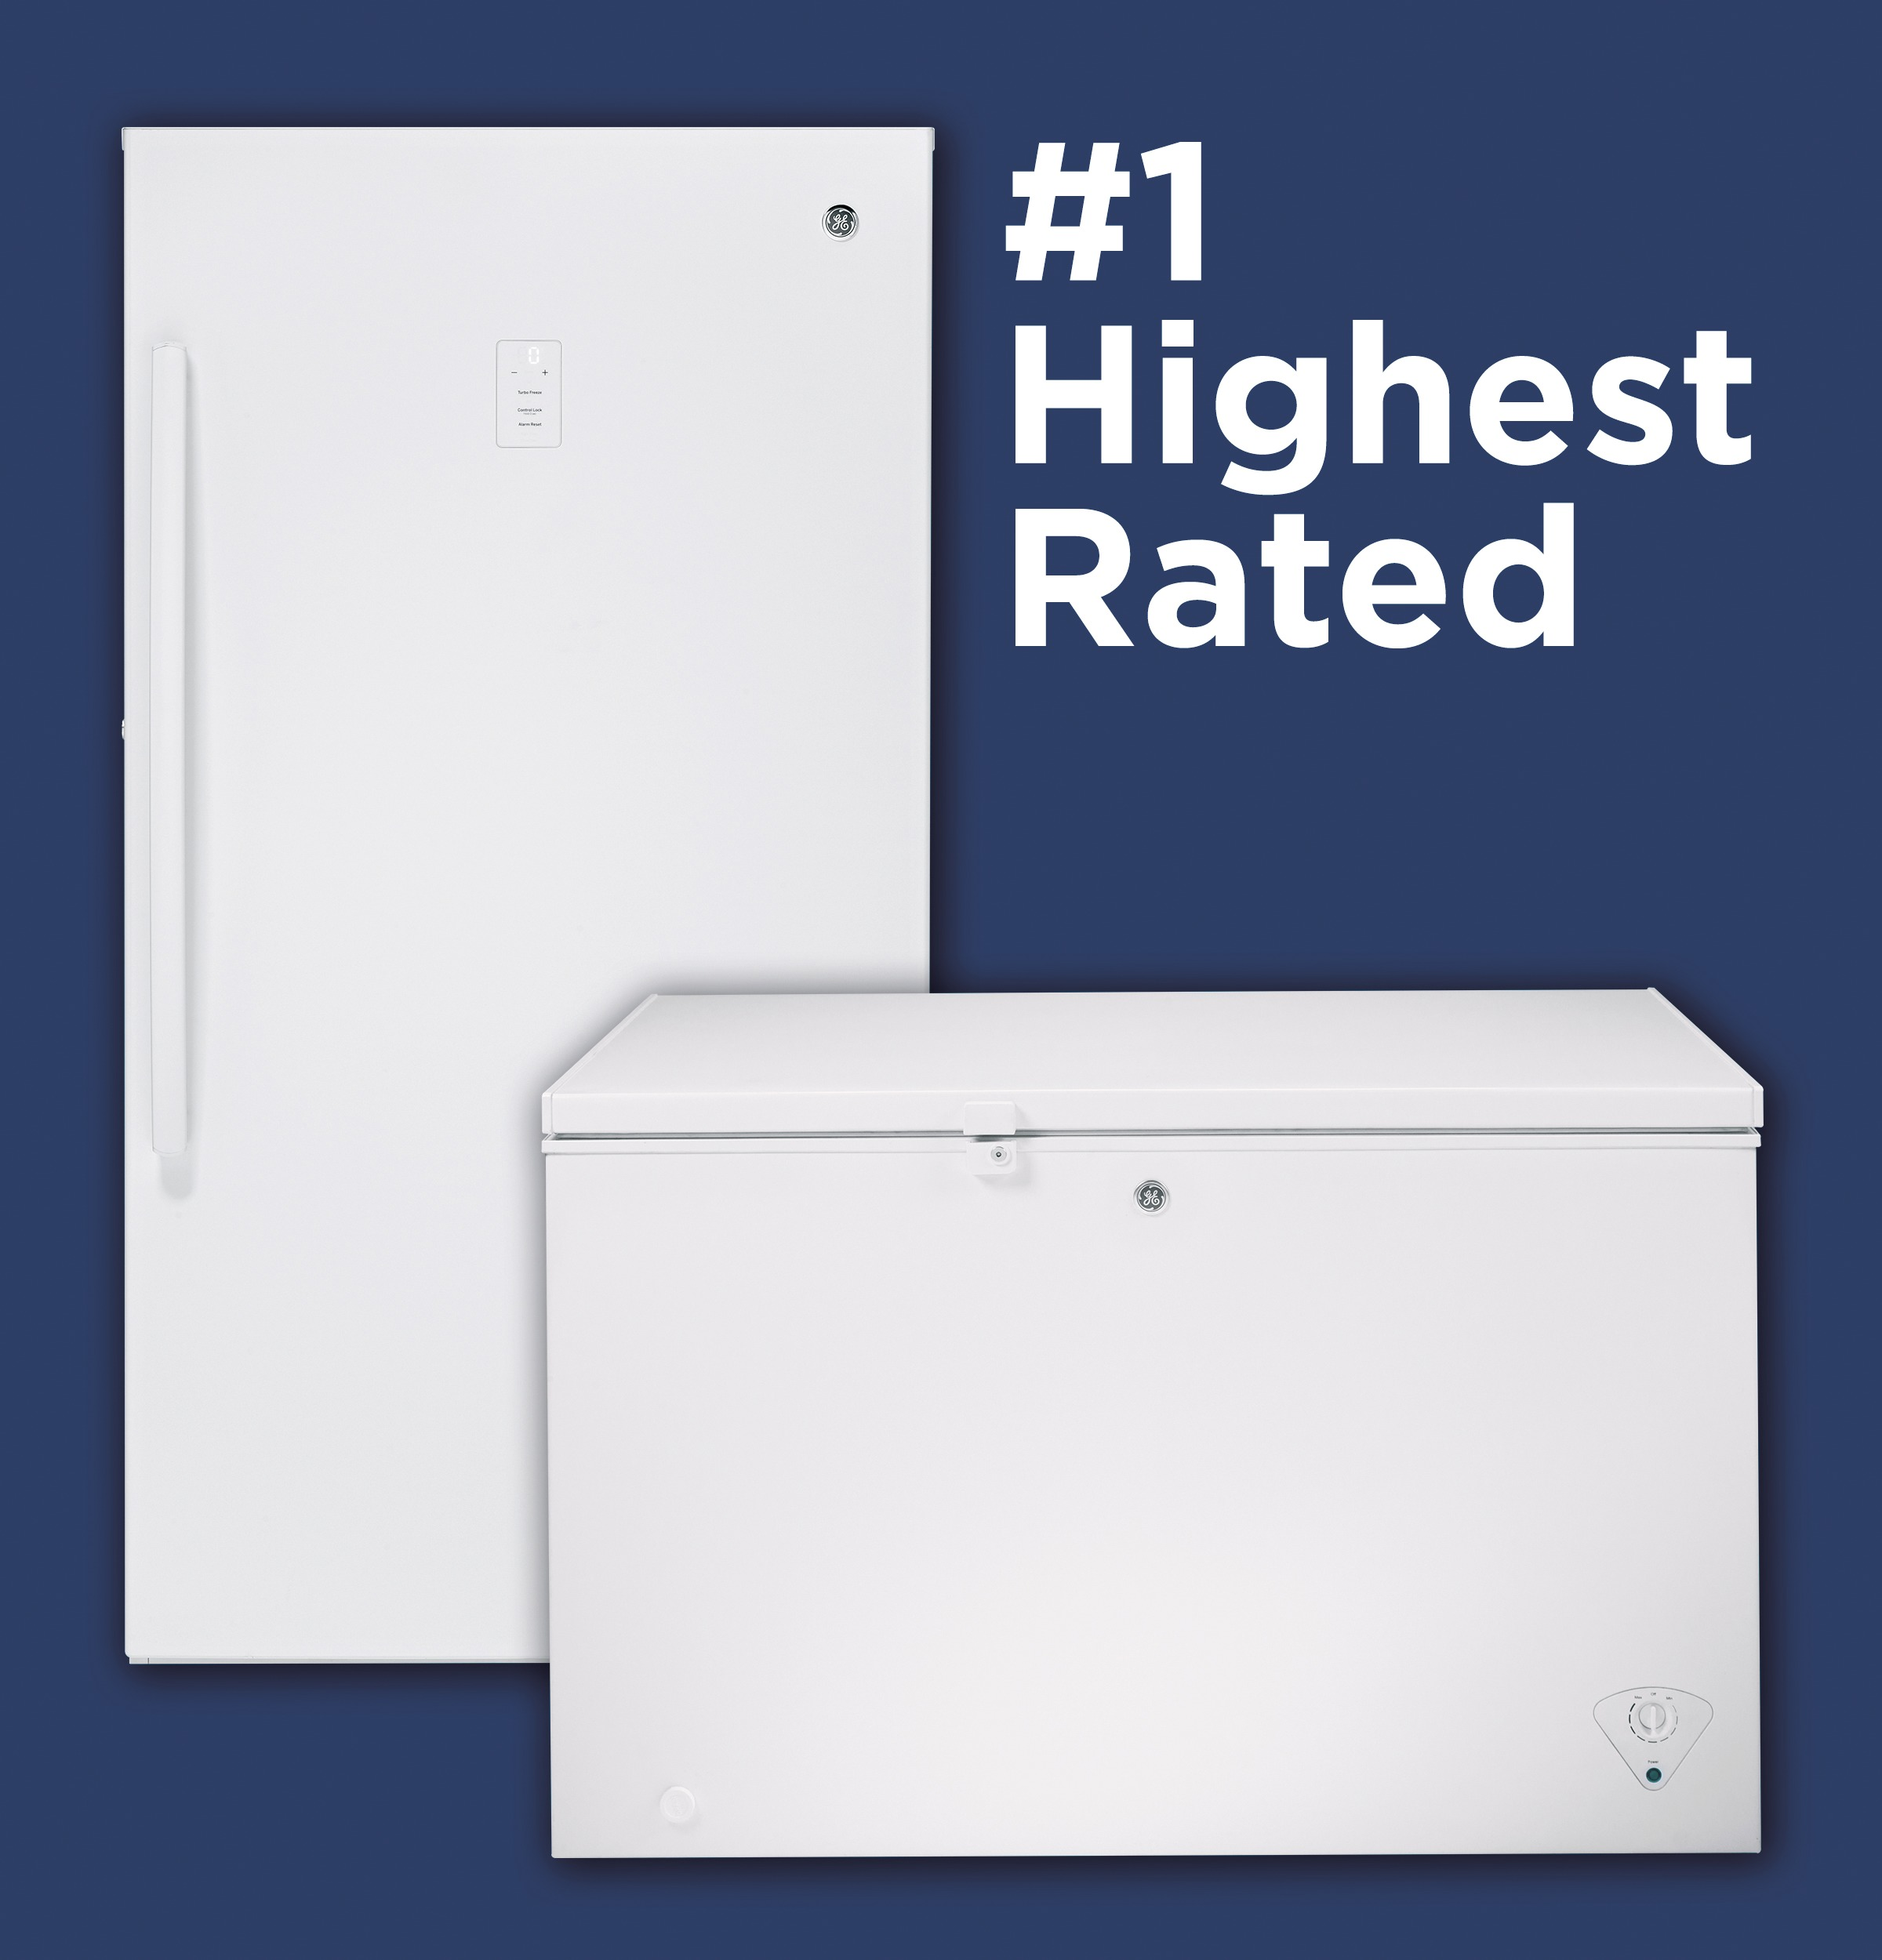 The highest rated upright freezer lineup in the industry